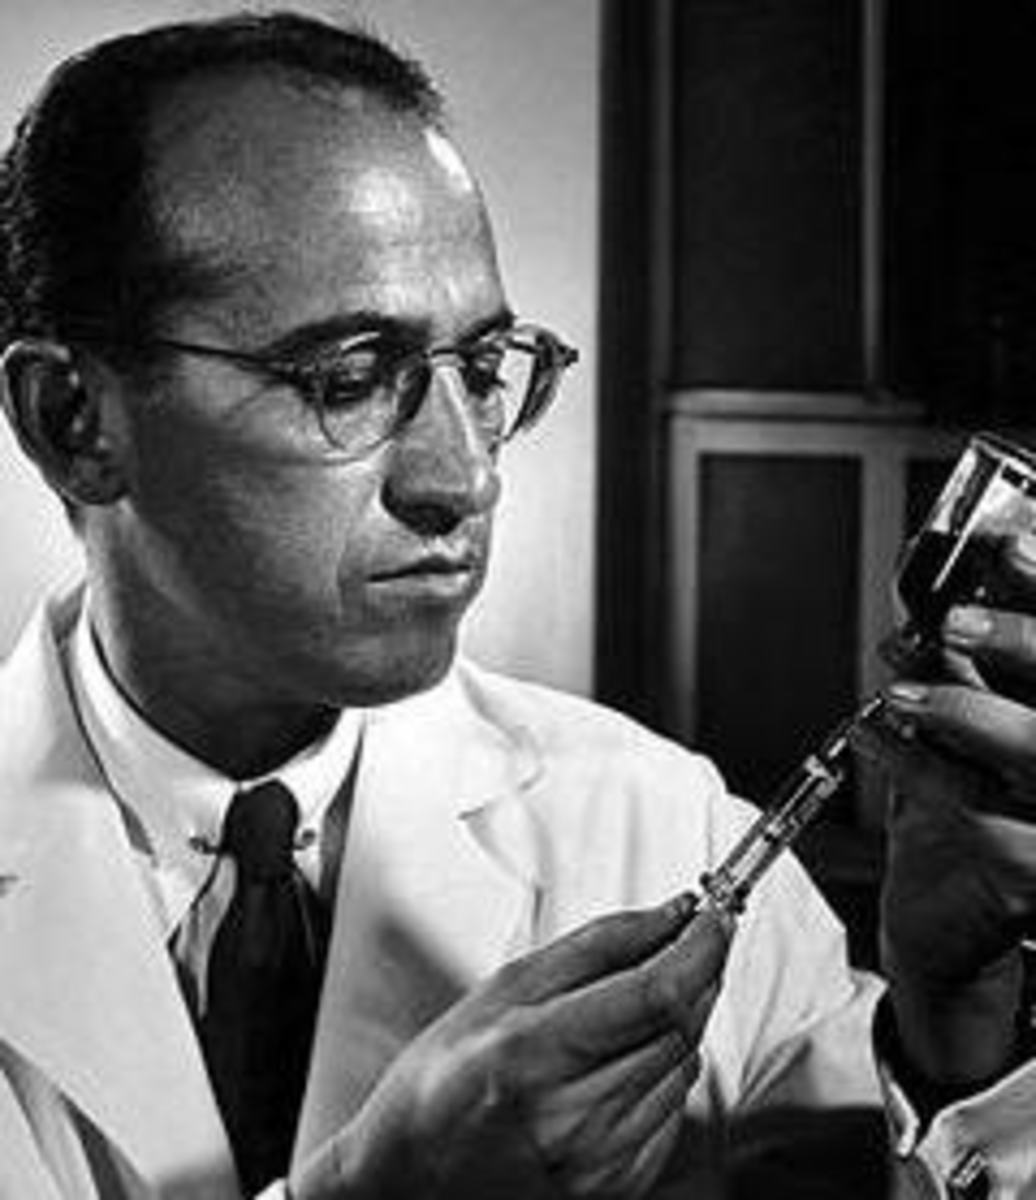 Jonas Salk  March of Dimes Foundation image in the Public Domain